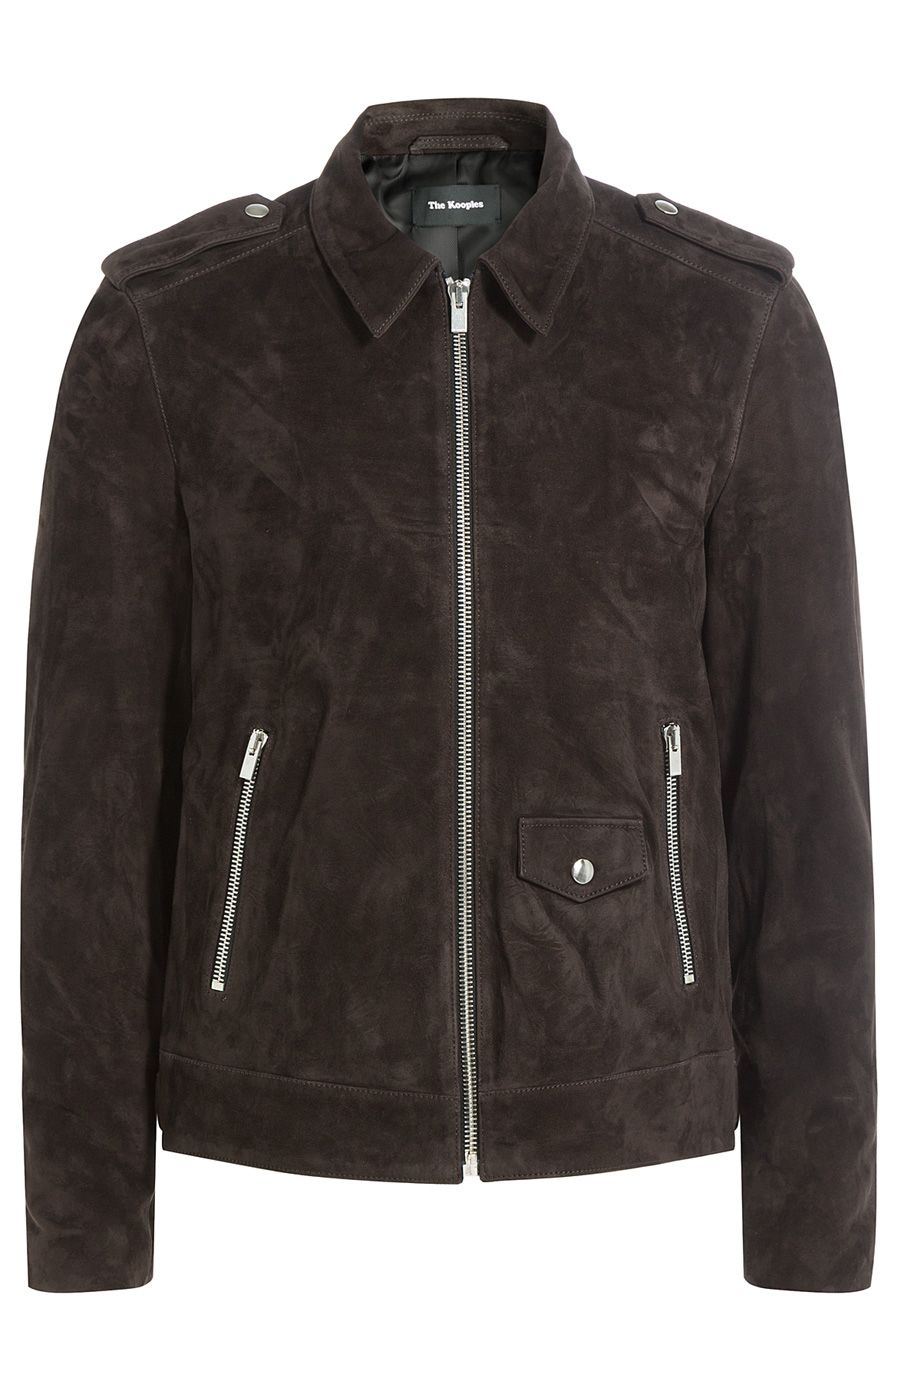 6f84cfcd216 THE KOOPLES Suede Jacket. #thekooples #cloth #leather jackets | The ...